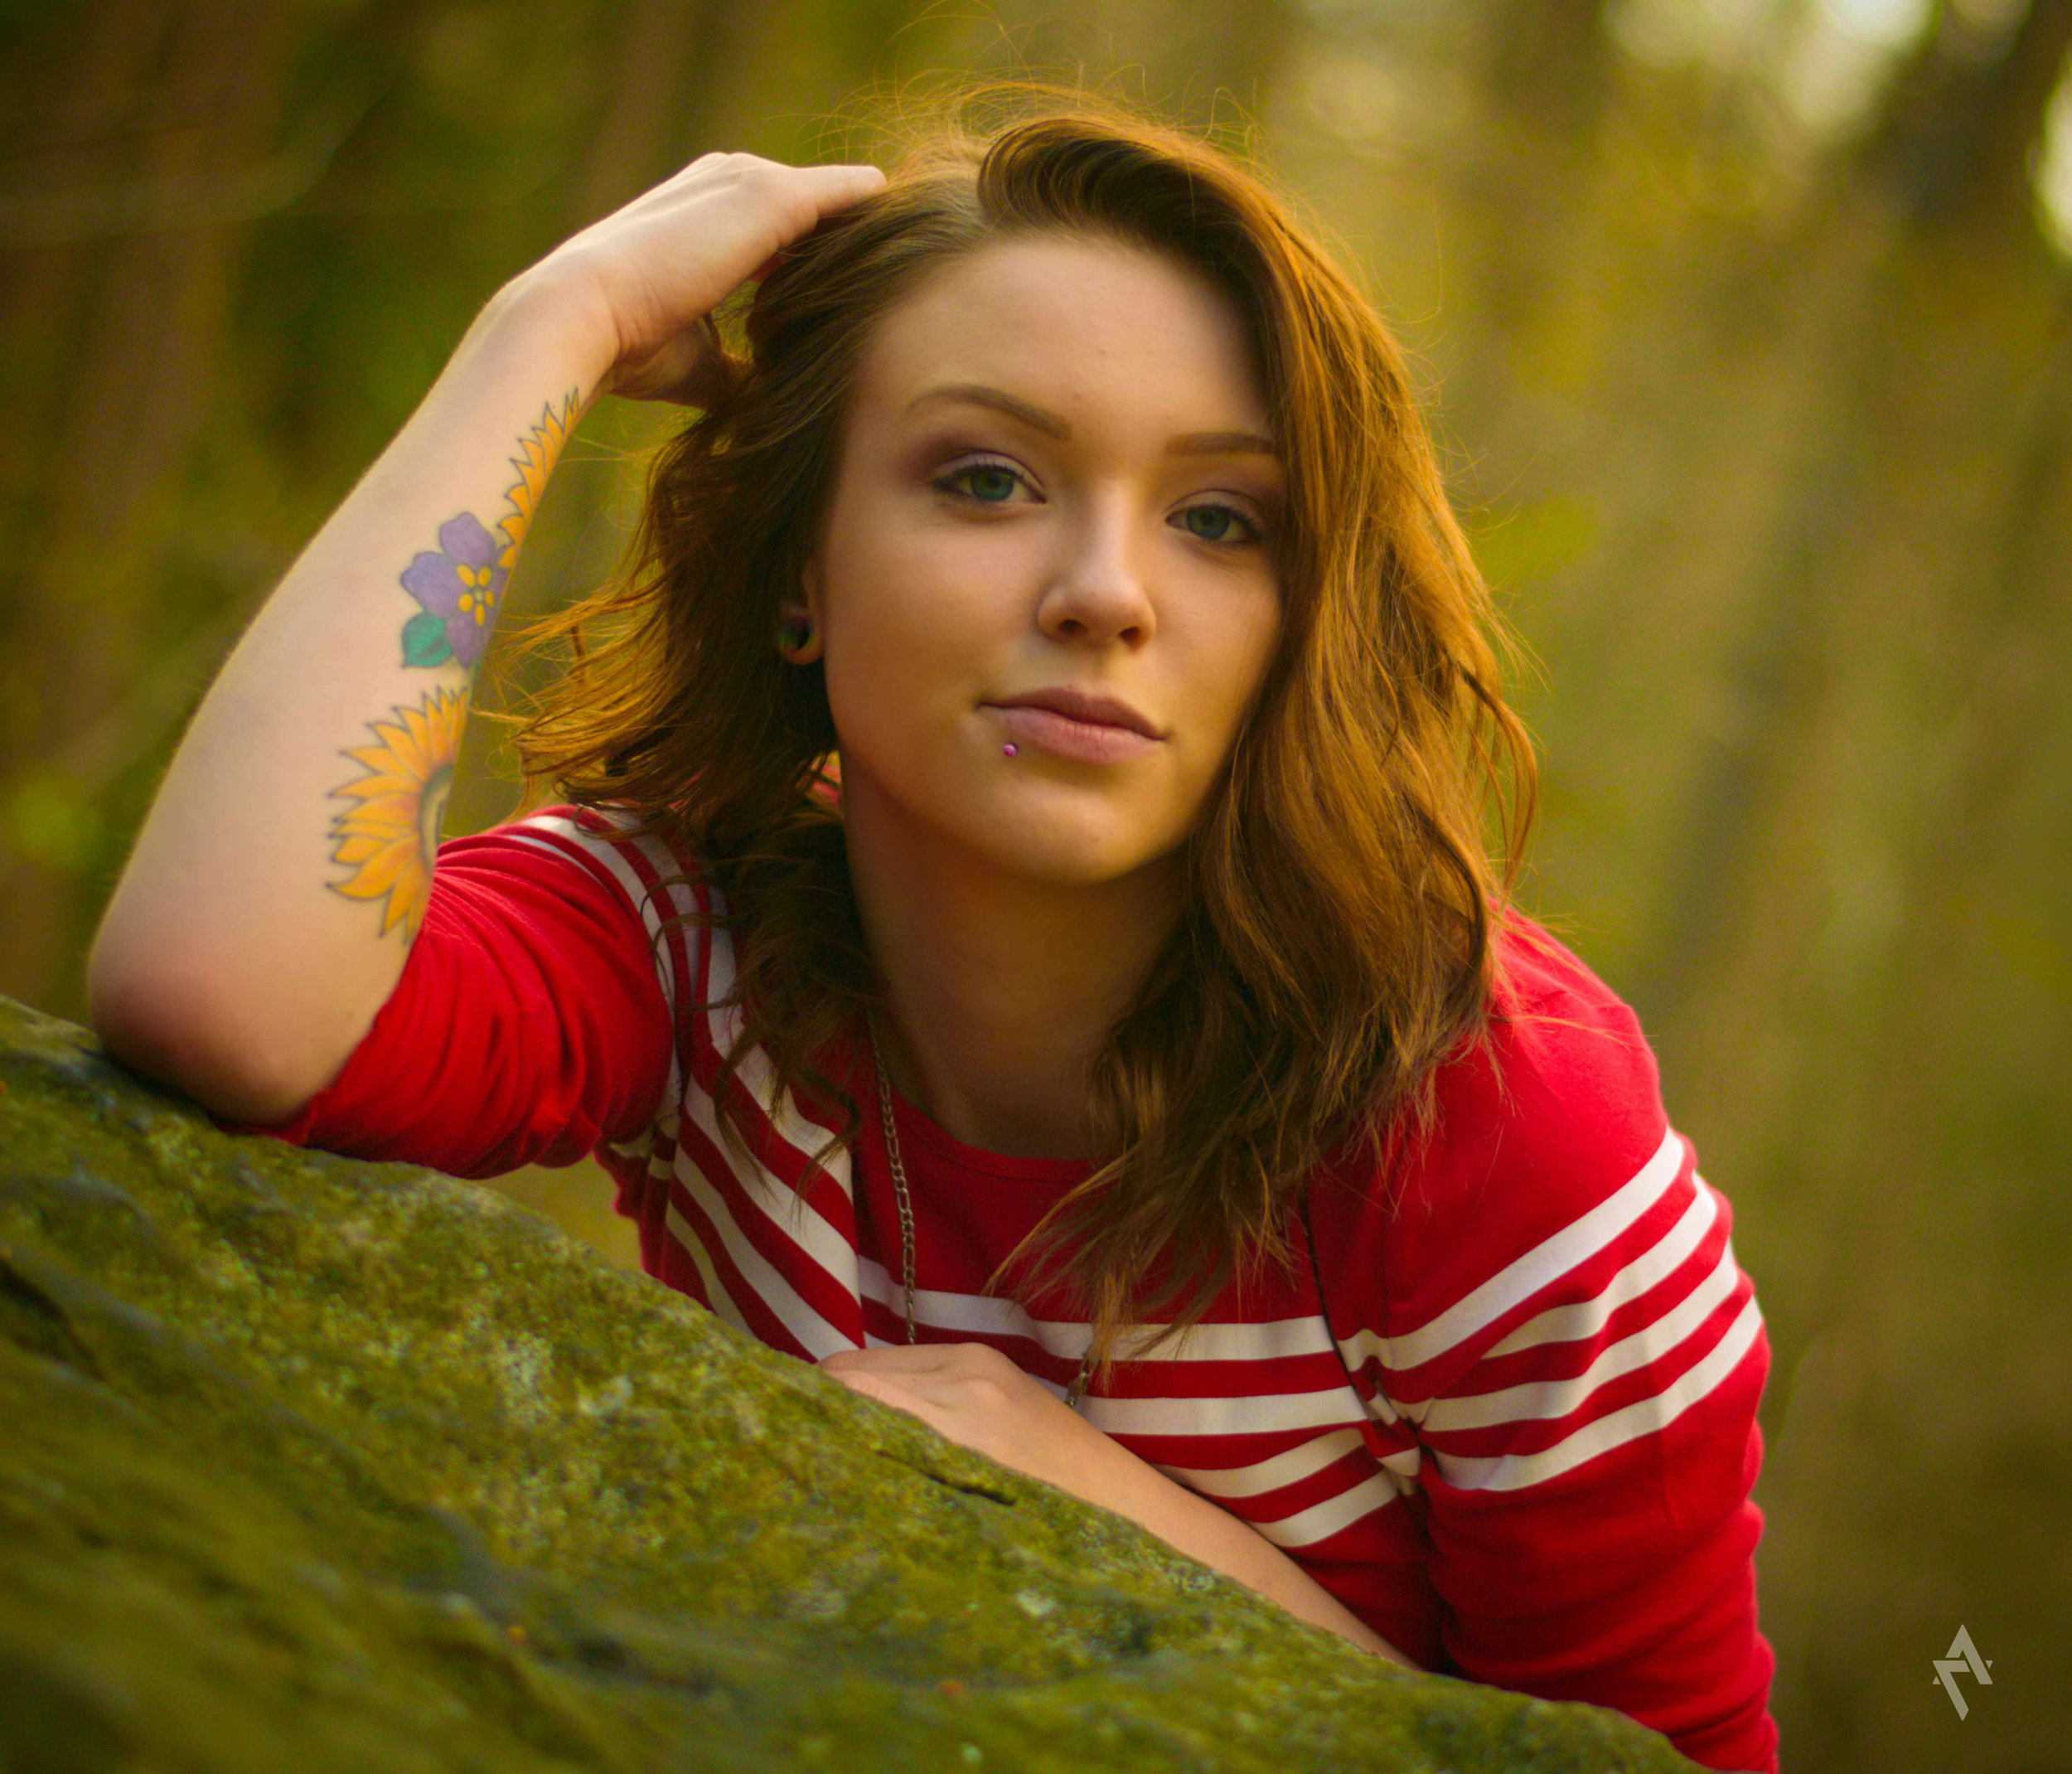 Abby_portrait_photography_ligonier_pa_warmcolors_beauty_4.jpg